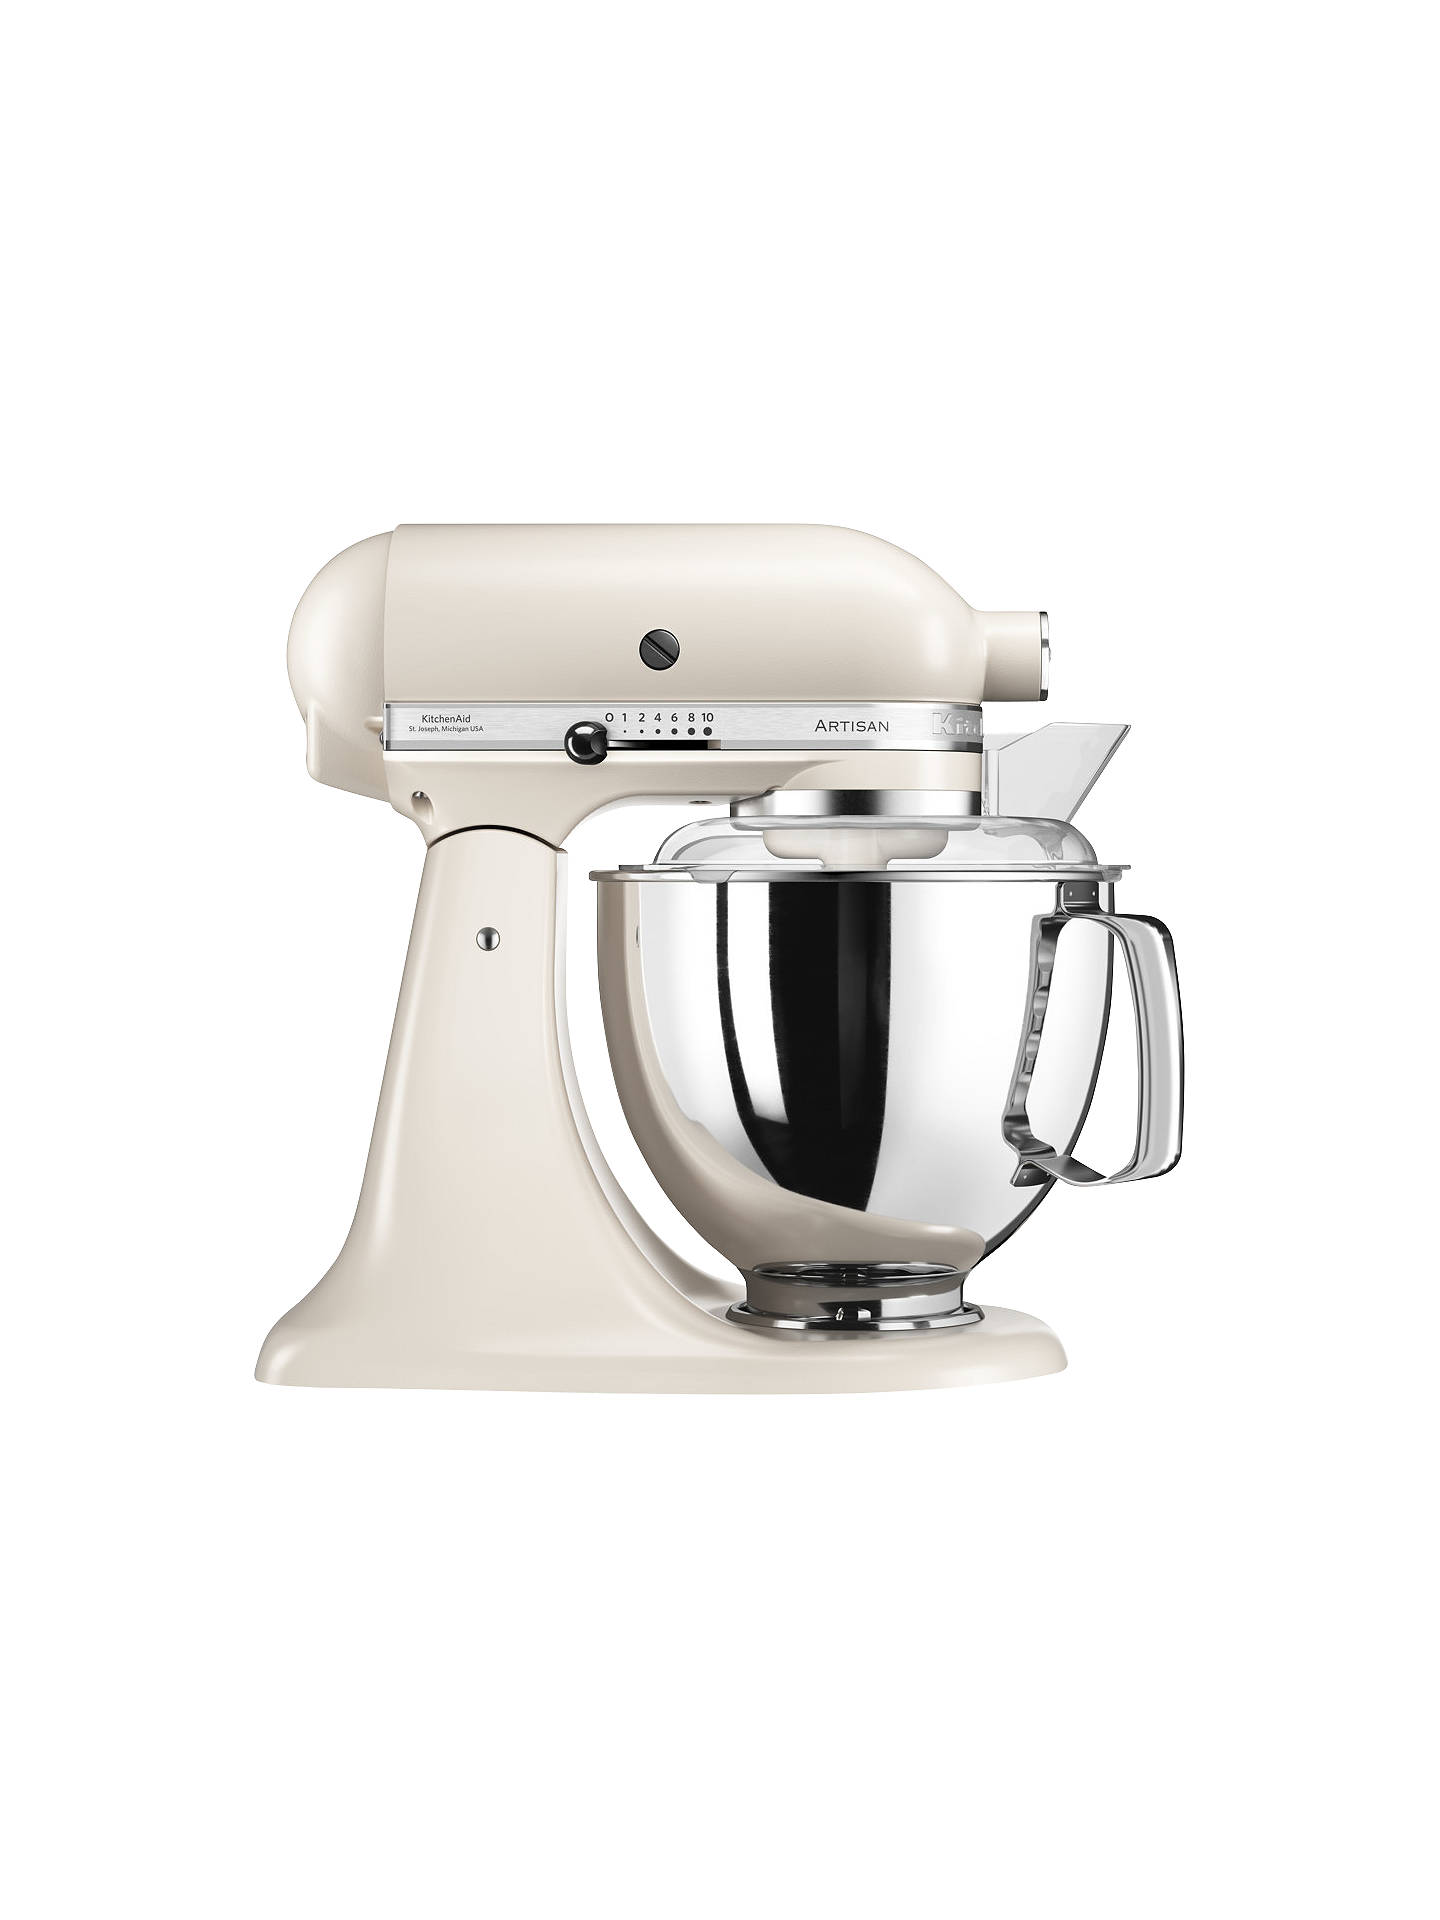 Kitchenaid 175 Artisan 4 8l Stand Mixer At John Lewis